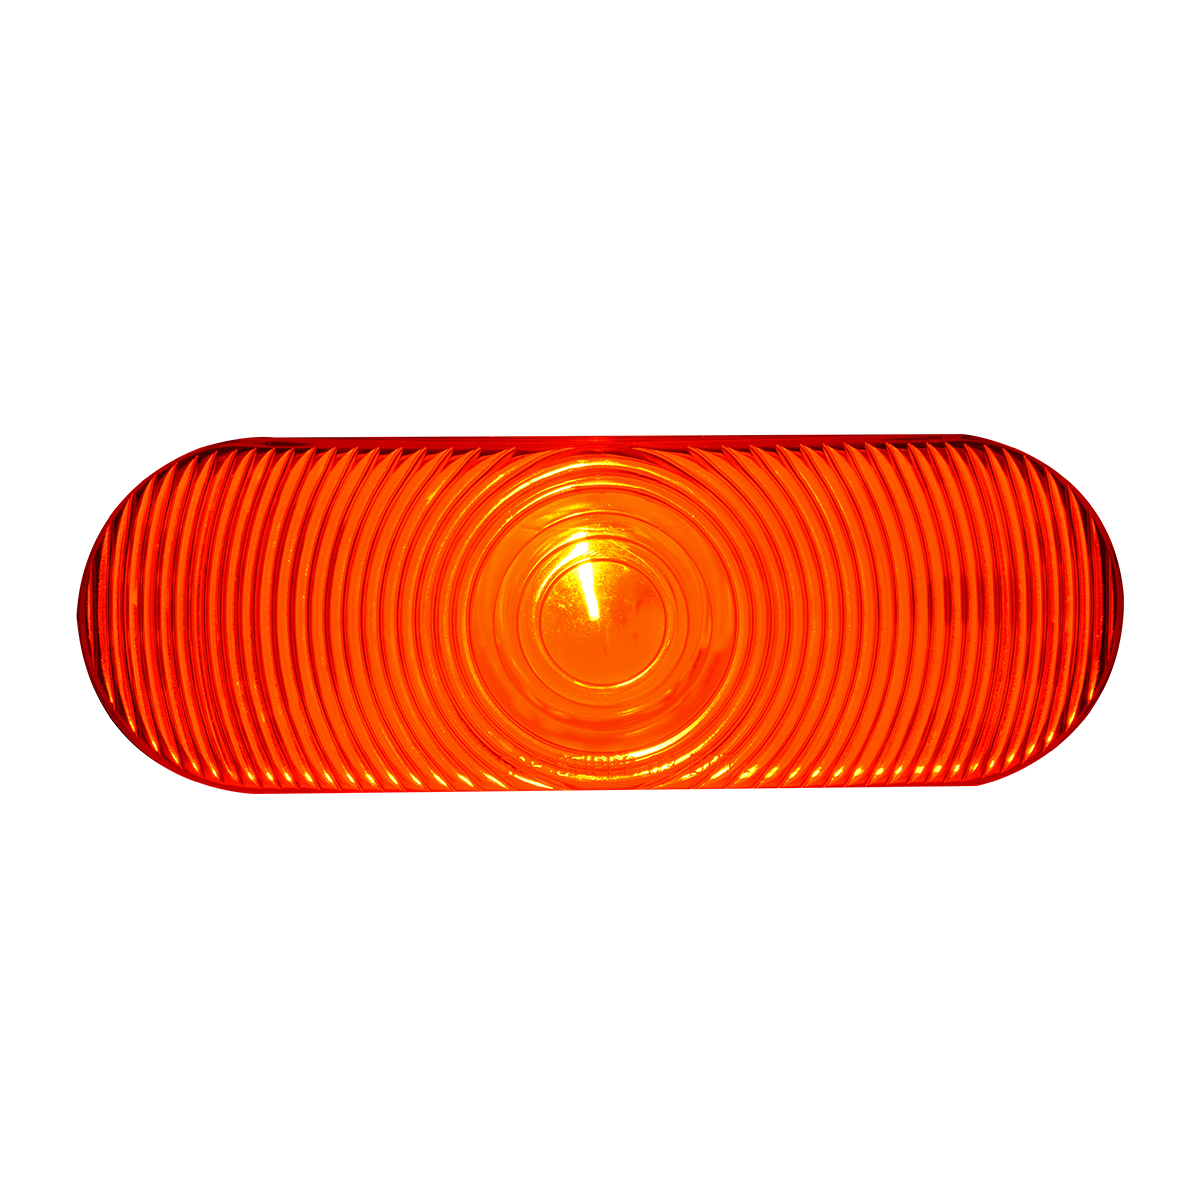 #80805 Incandescent Red/Red - Flat